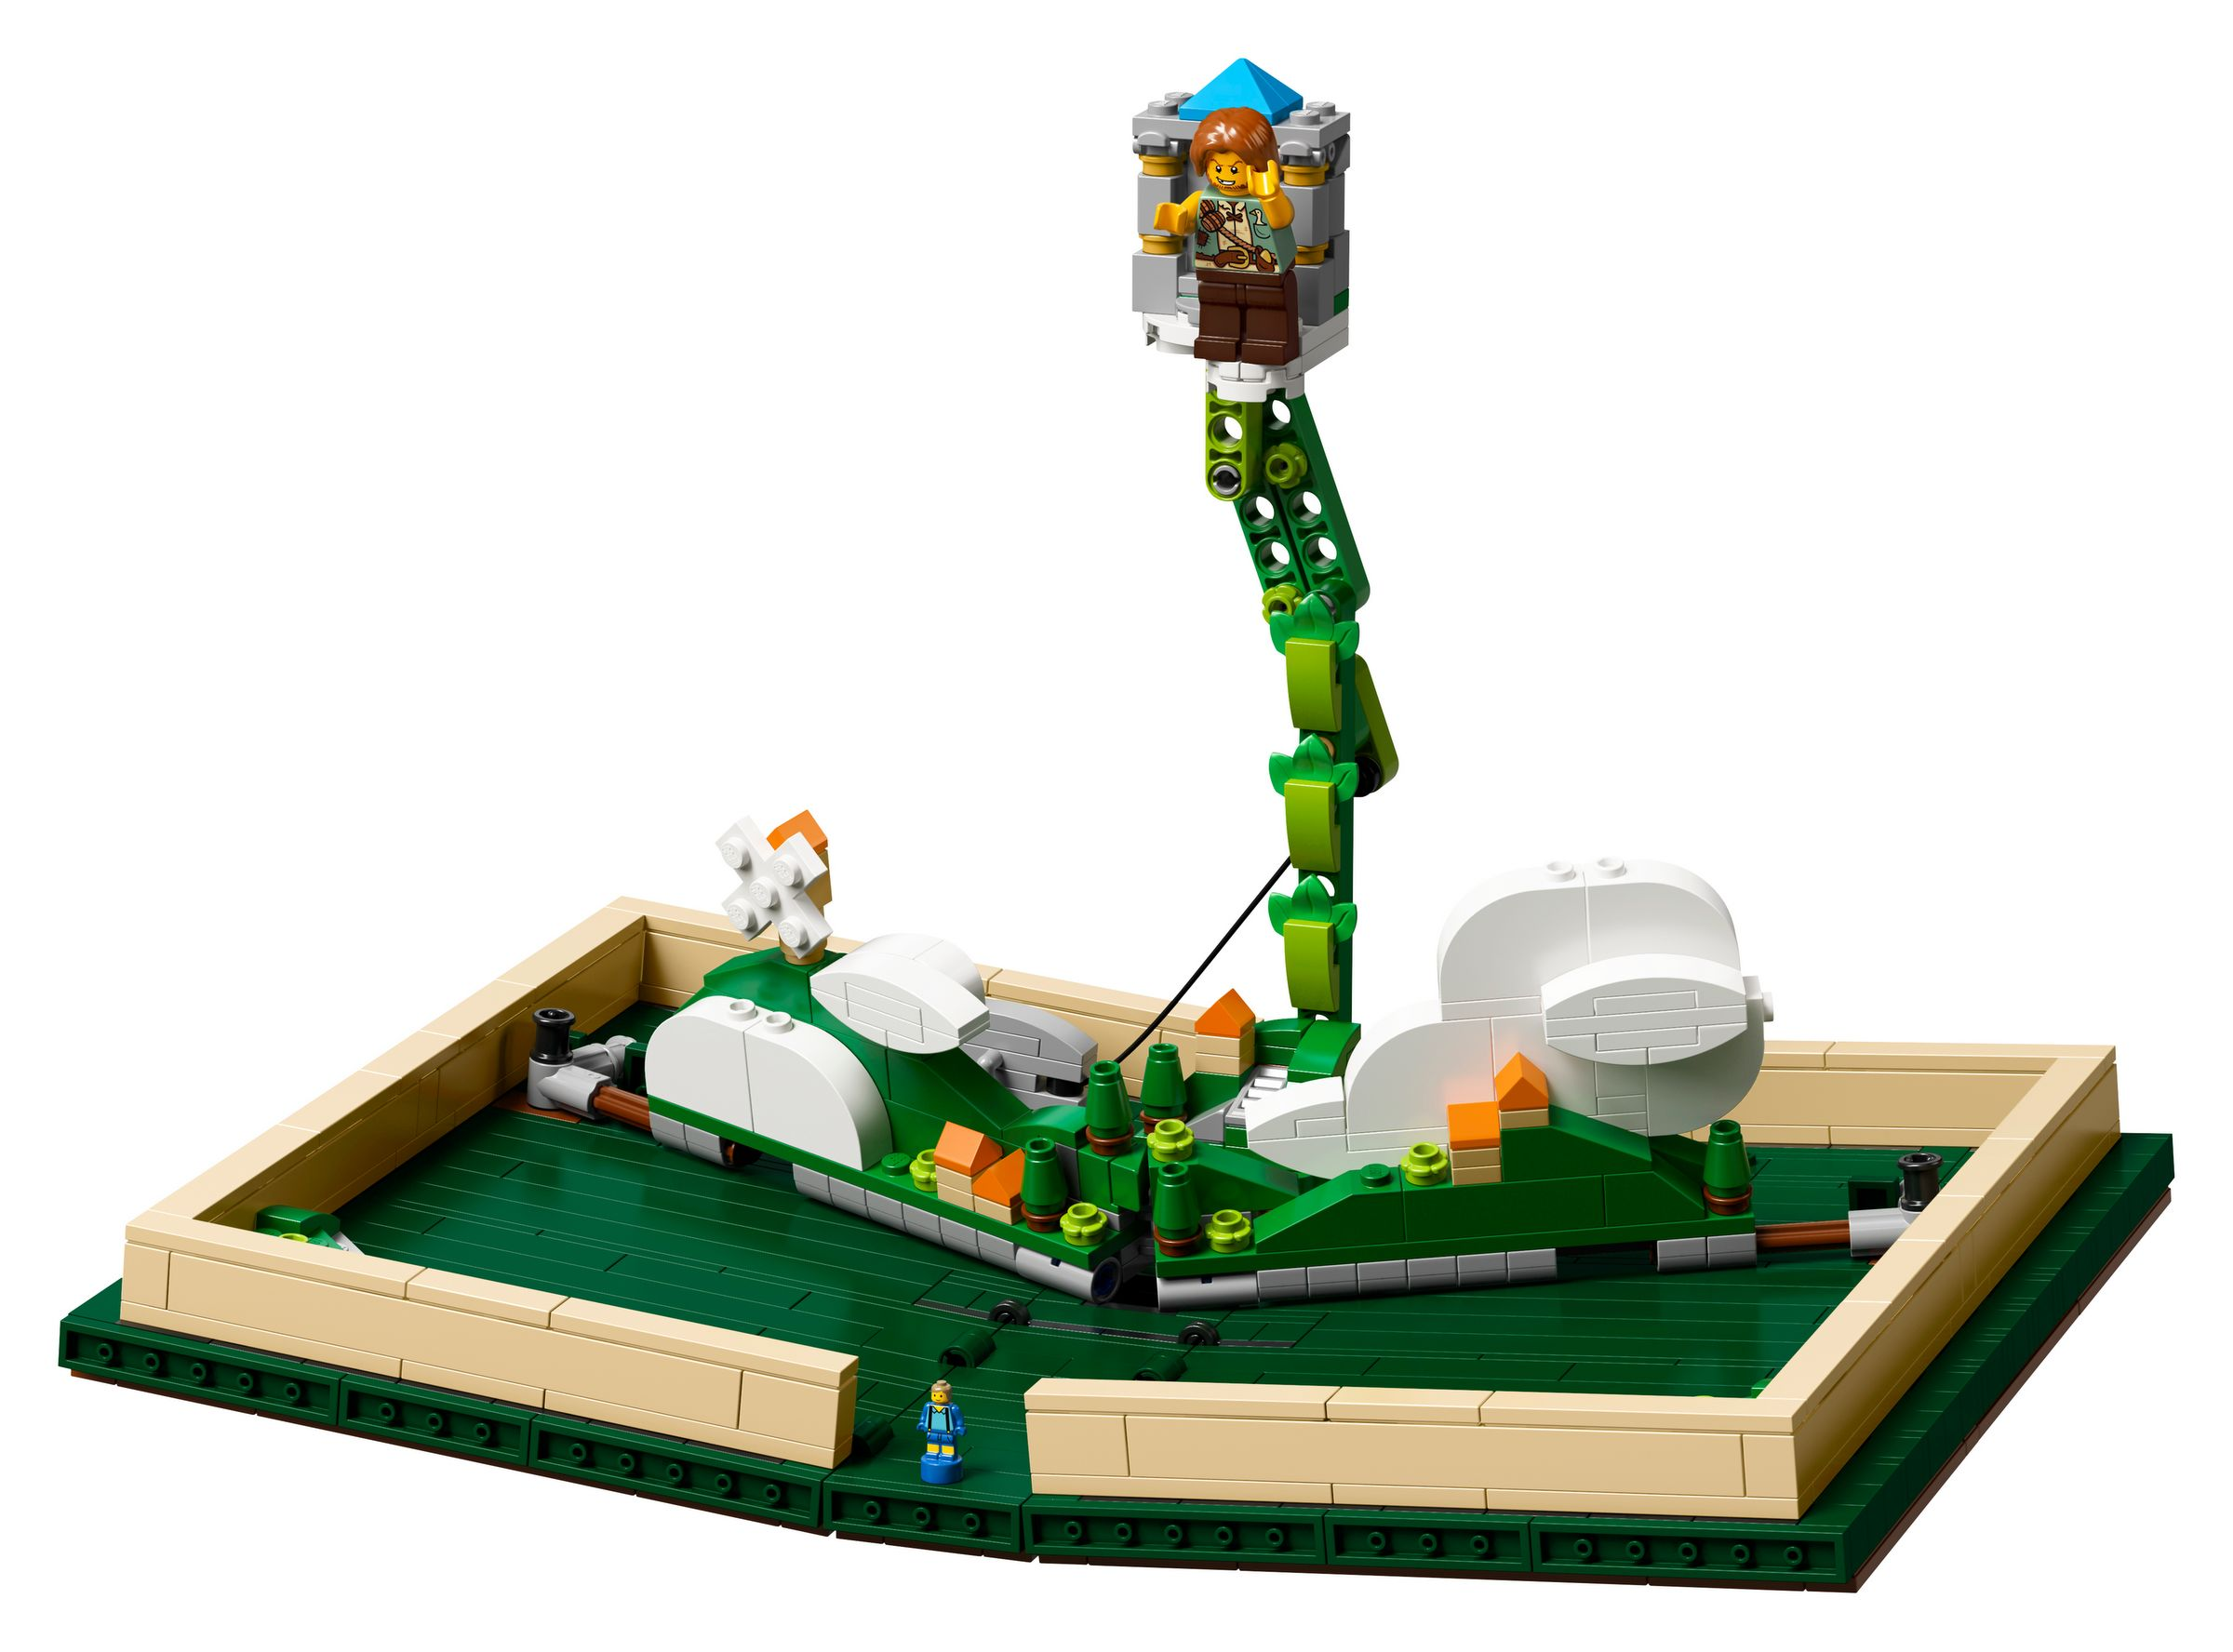 LEGO Ideas 21315 Pop-Up-Buch LEGO_21315_alt4.jpg